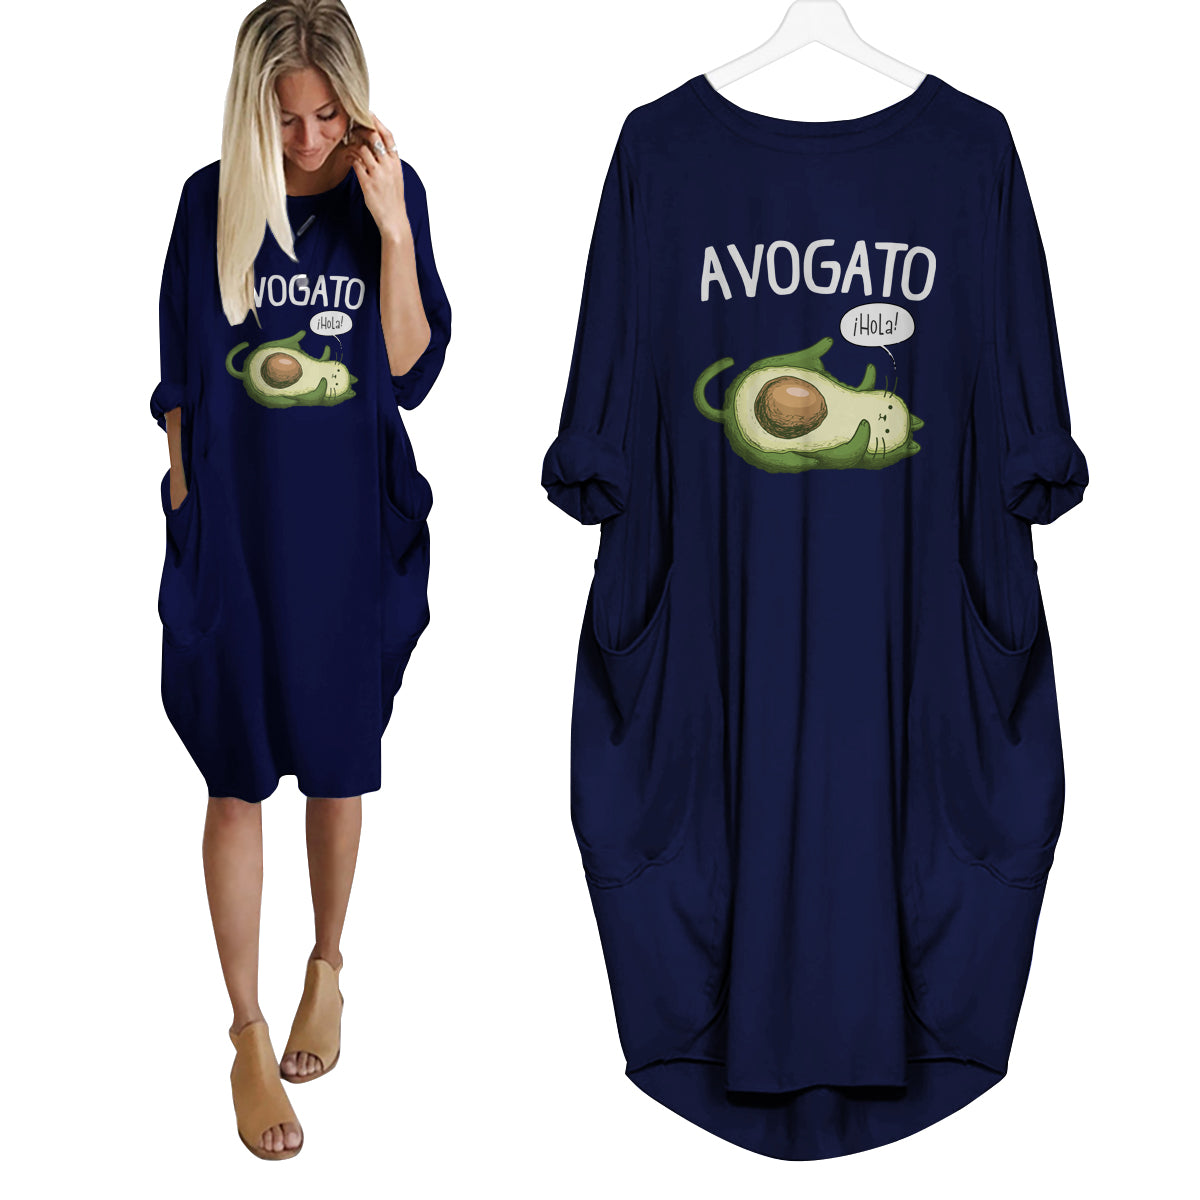 Avogato Dress